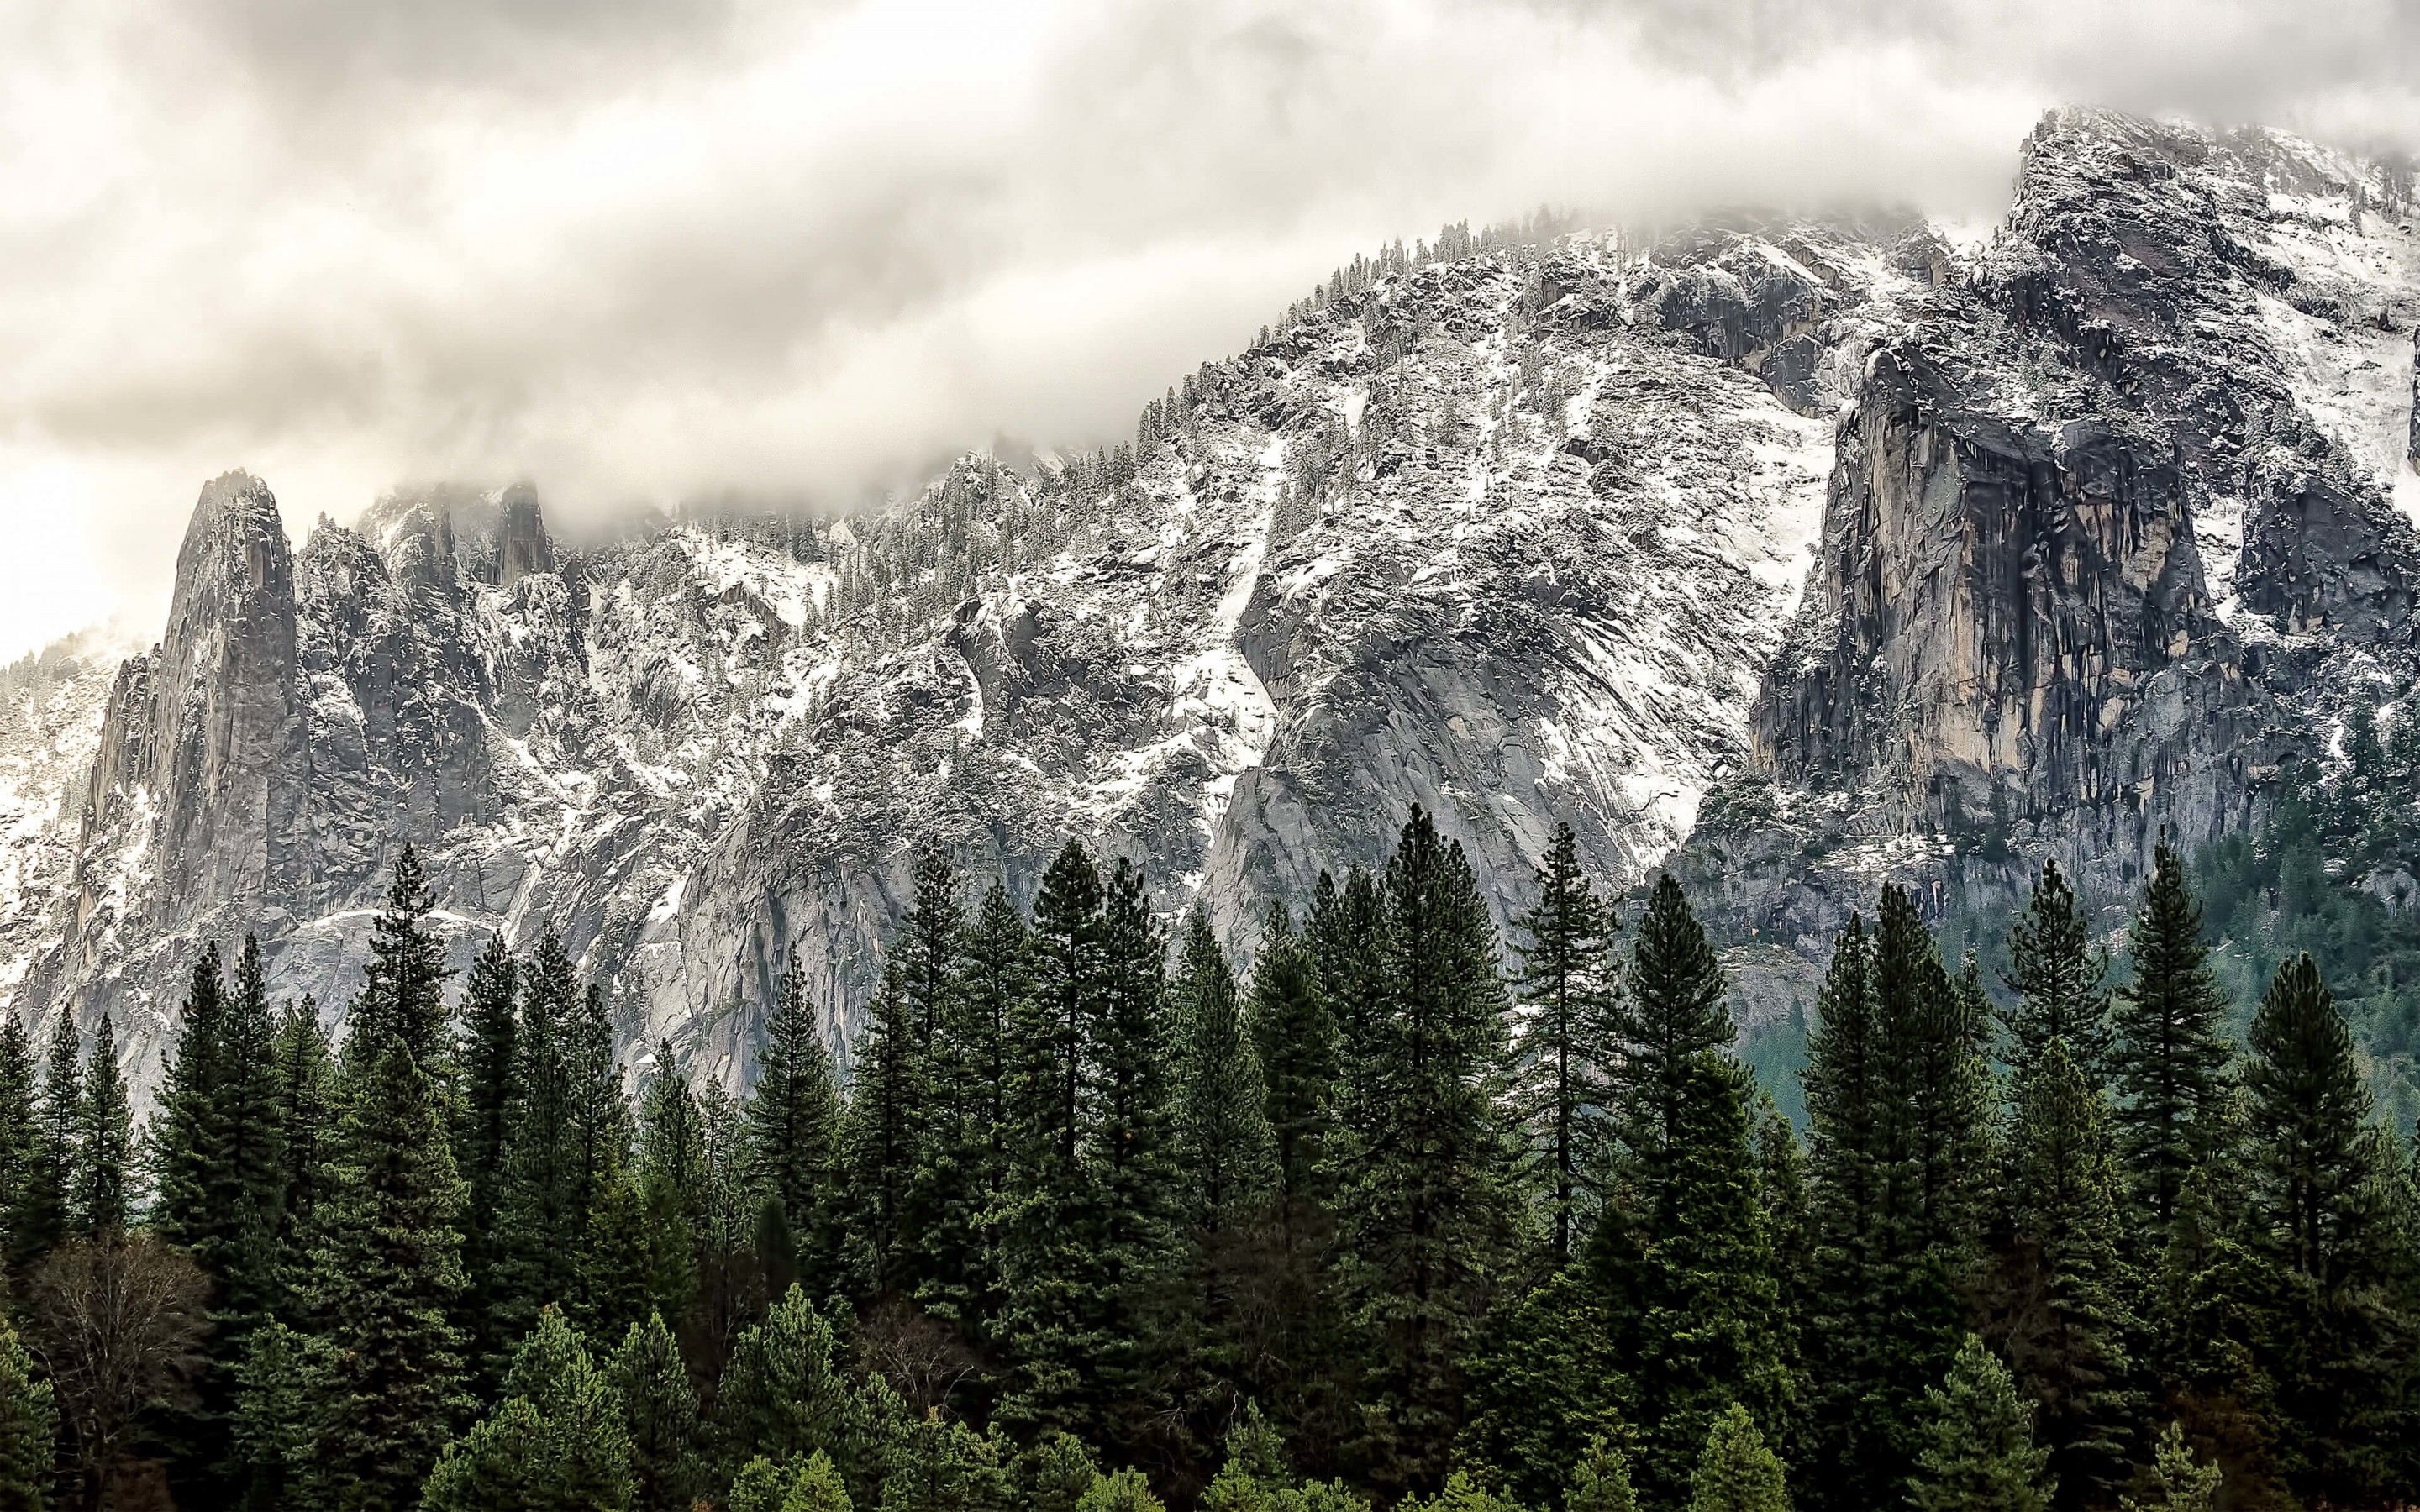 Winter Day at Yosemite National Park Wallpaper for Desktop 2880x1800